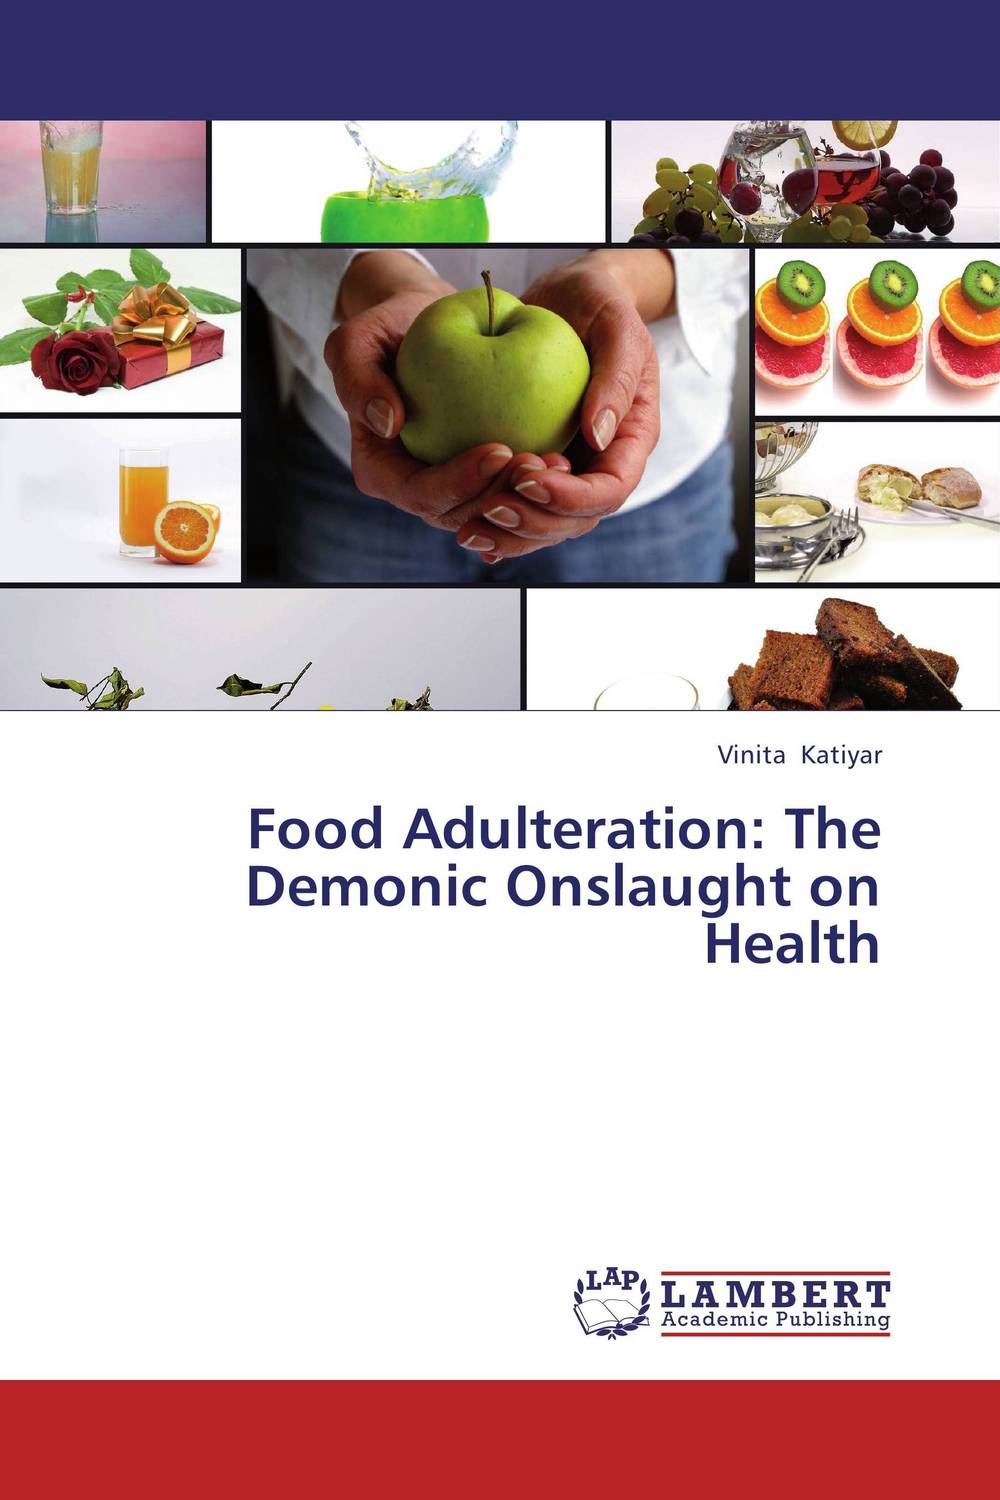 Food Adulteration: The Demonic Onslaught on Health thermo operated water valves can be used in food processing equipments biomass boilers and hydraulic systems